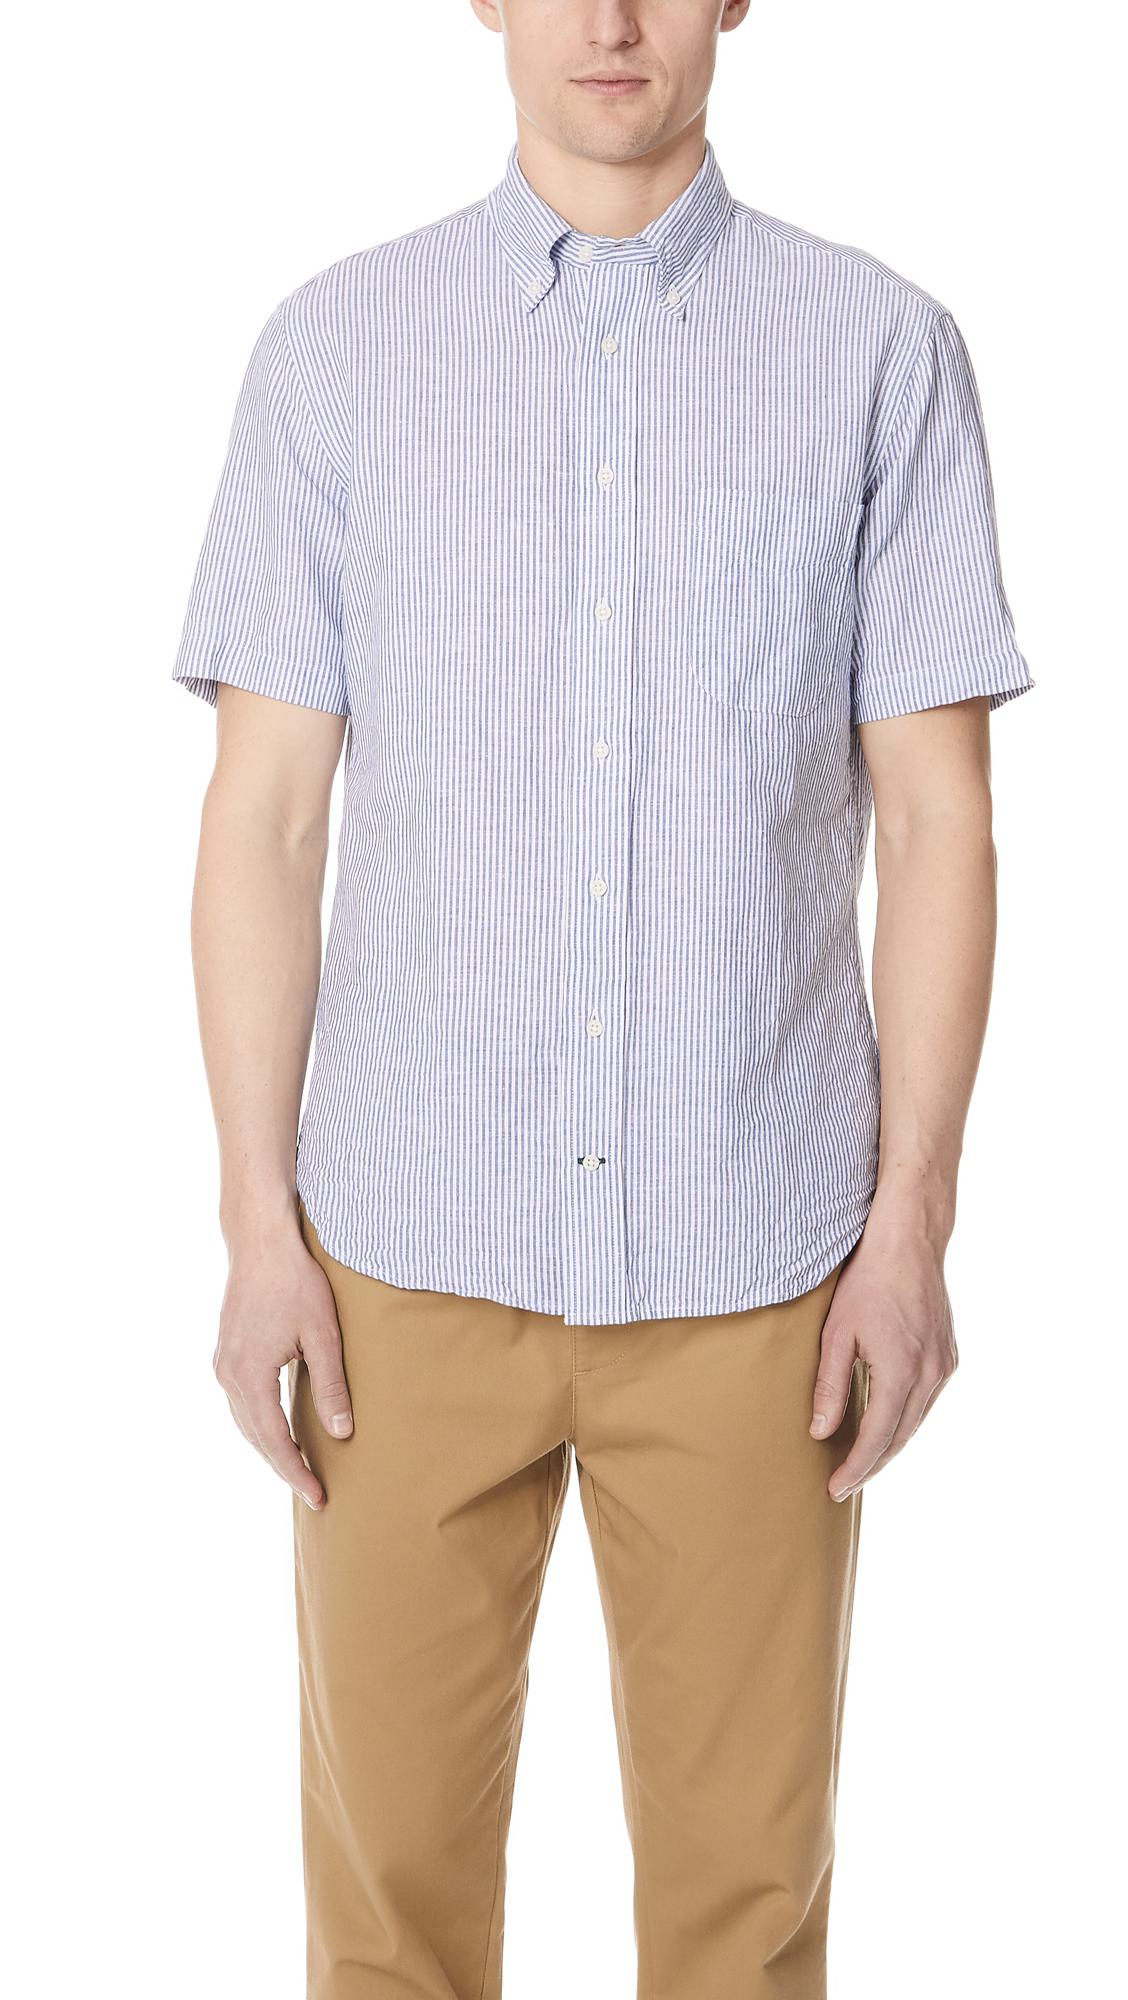 9ad68433b6832 Gitman Brothers Vintage Short Sleeve Linen Stripe Shirt in Blue for ...